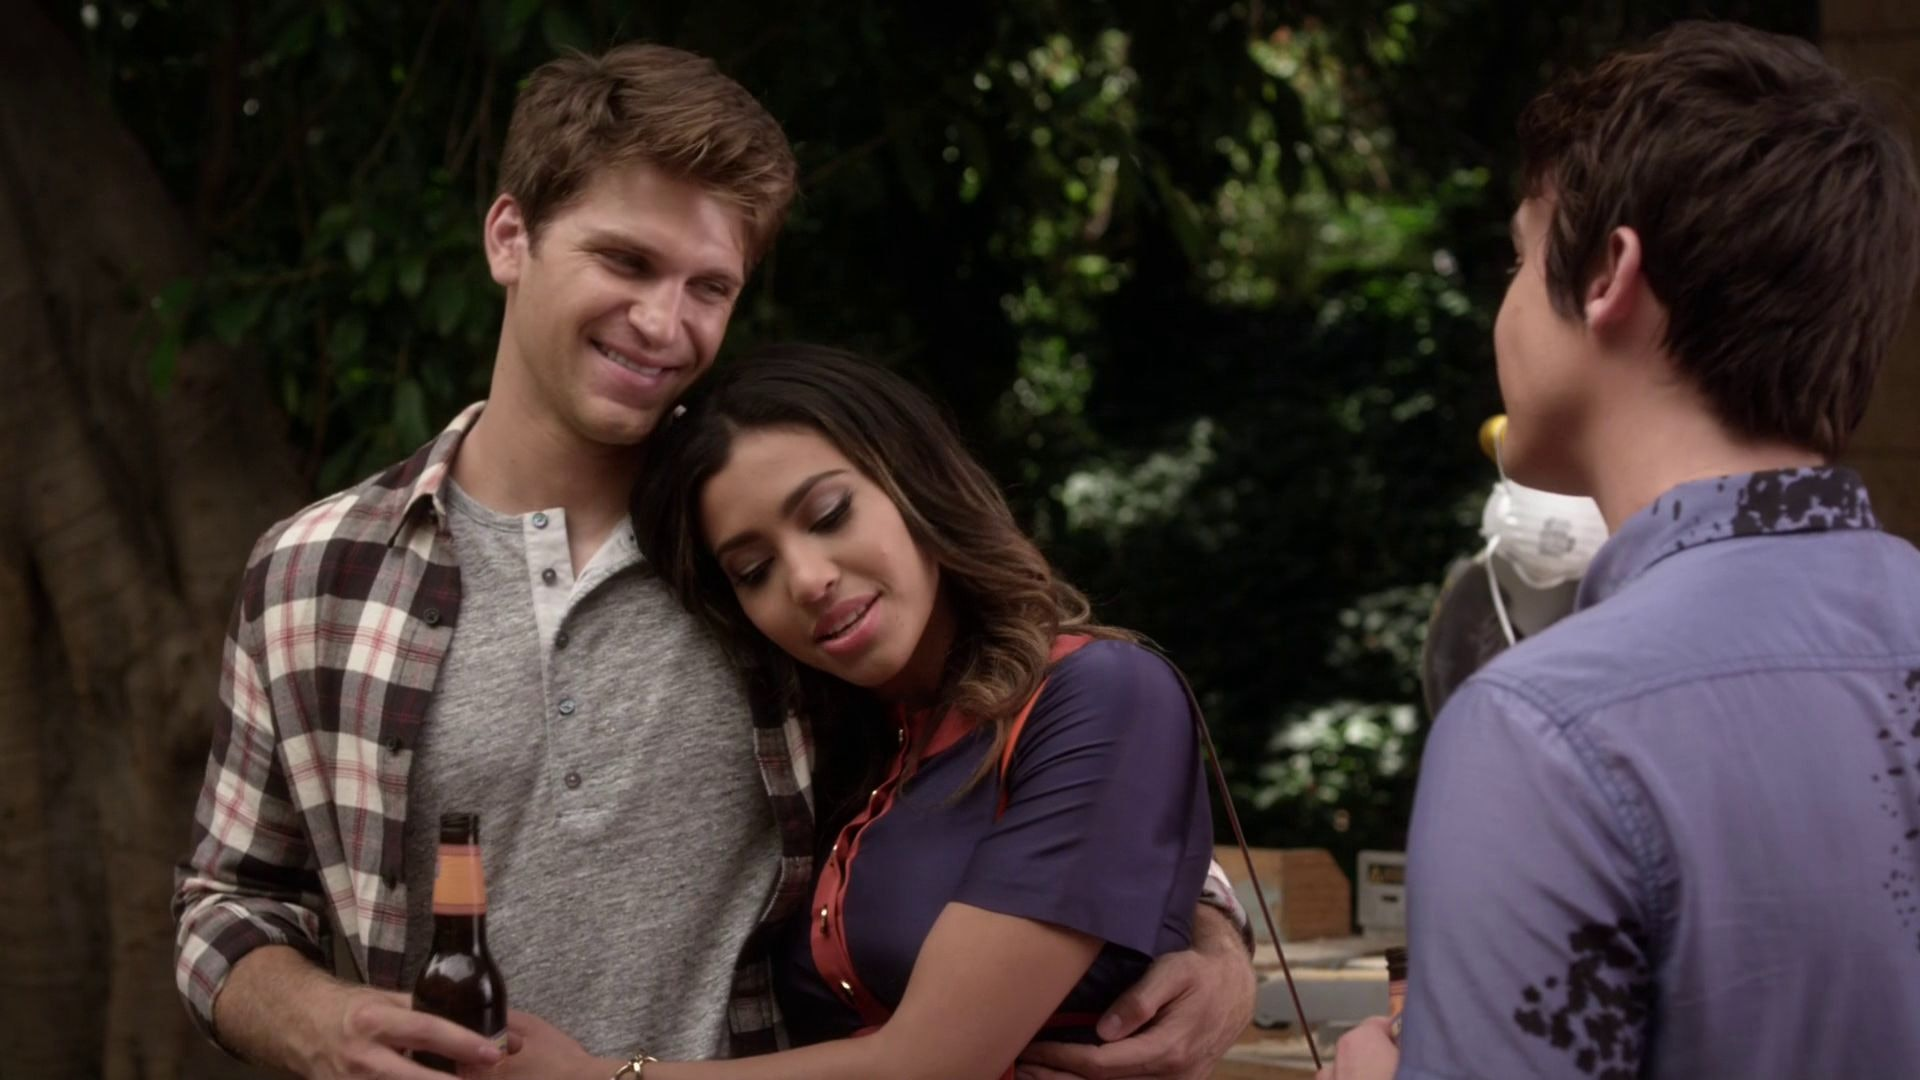 Caleb and spencer dating pll finale